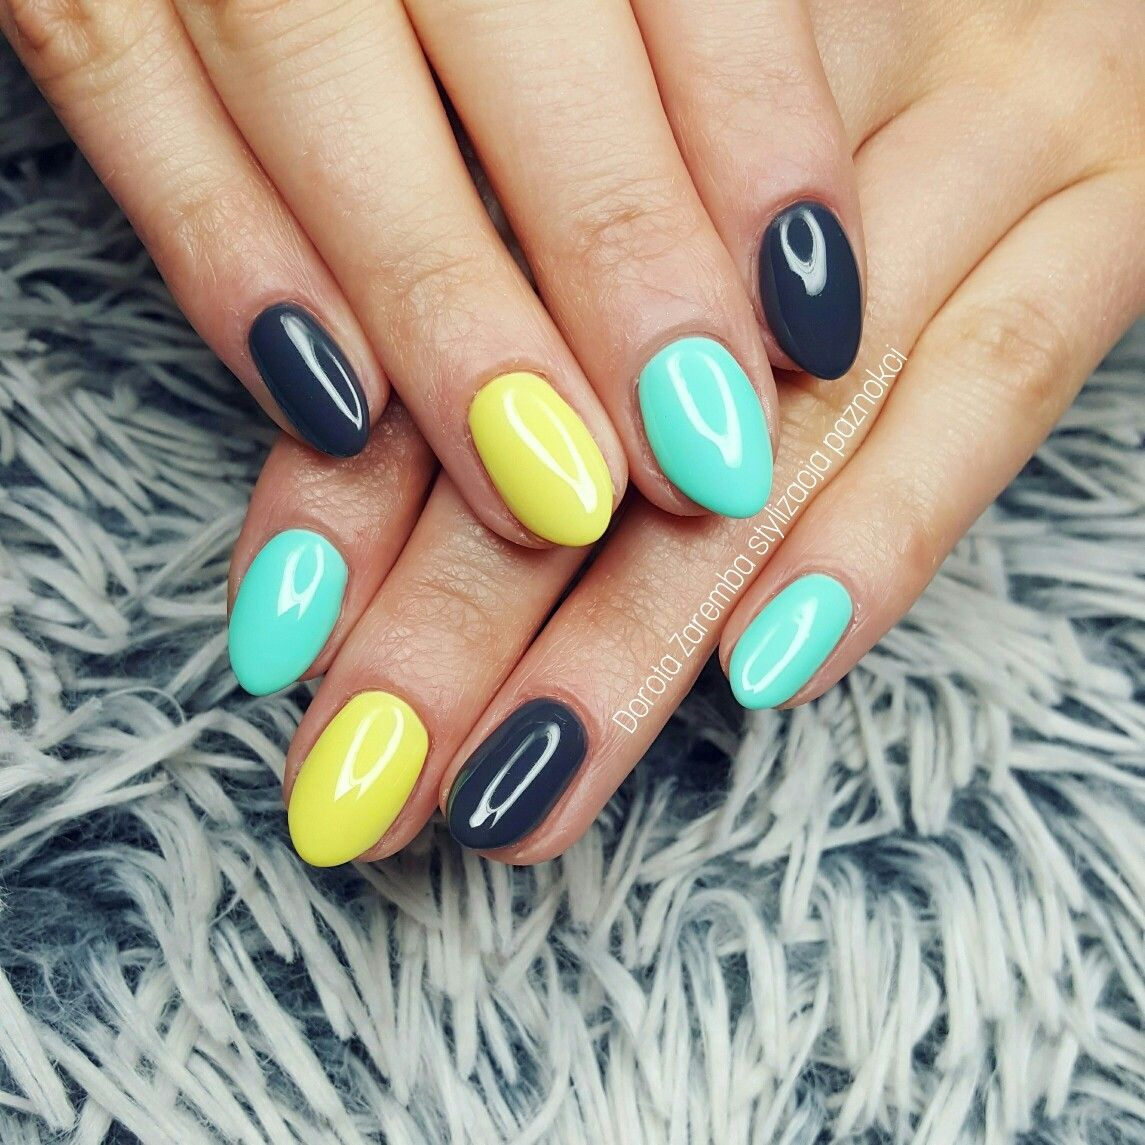 Pin on my passion - nails